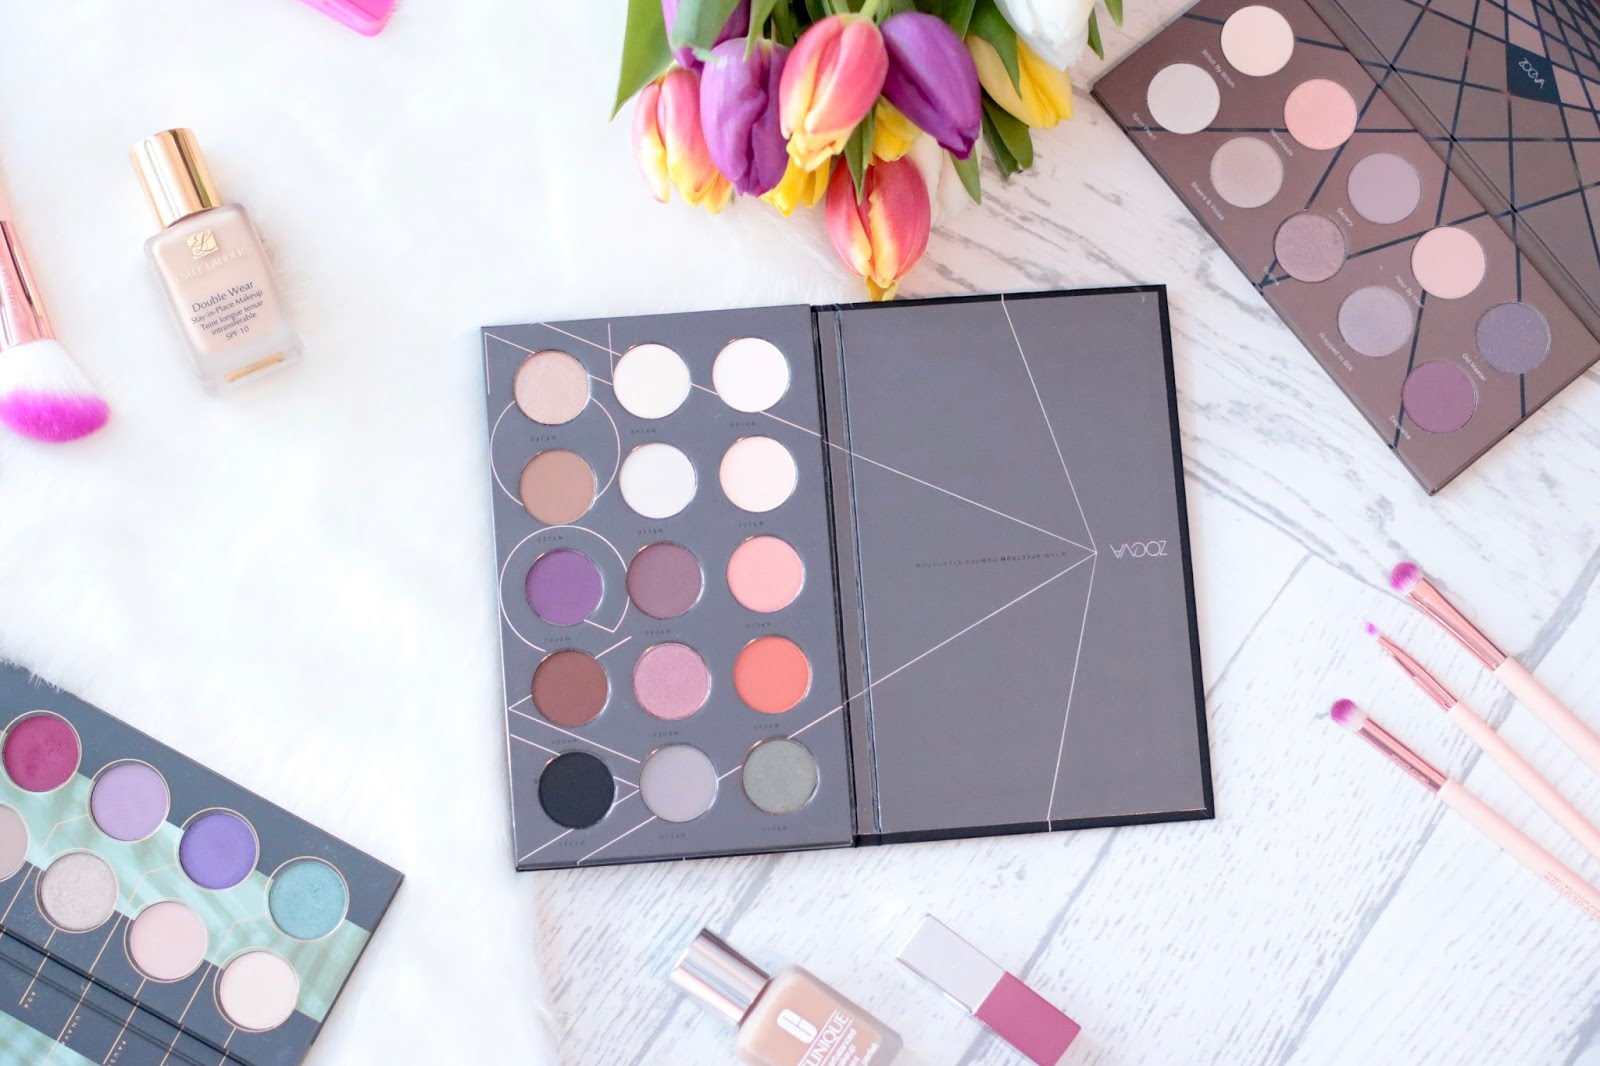 Zoeva Warm Spectrum Eyeshadow Palette - Review & Swatches